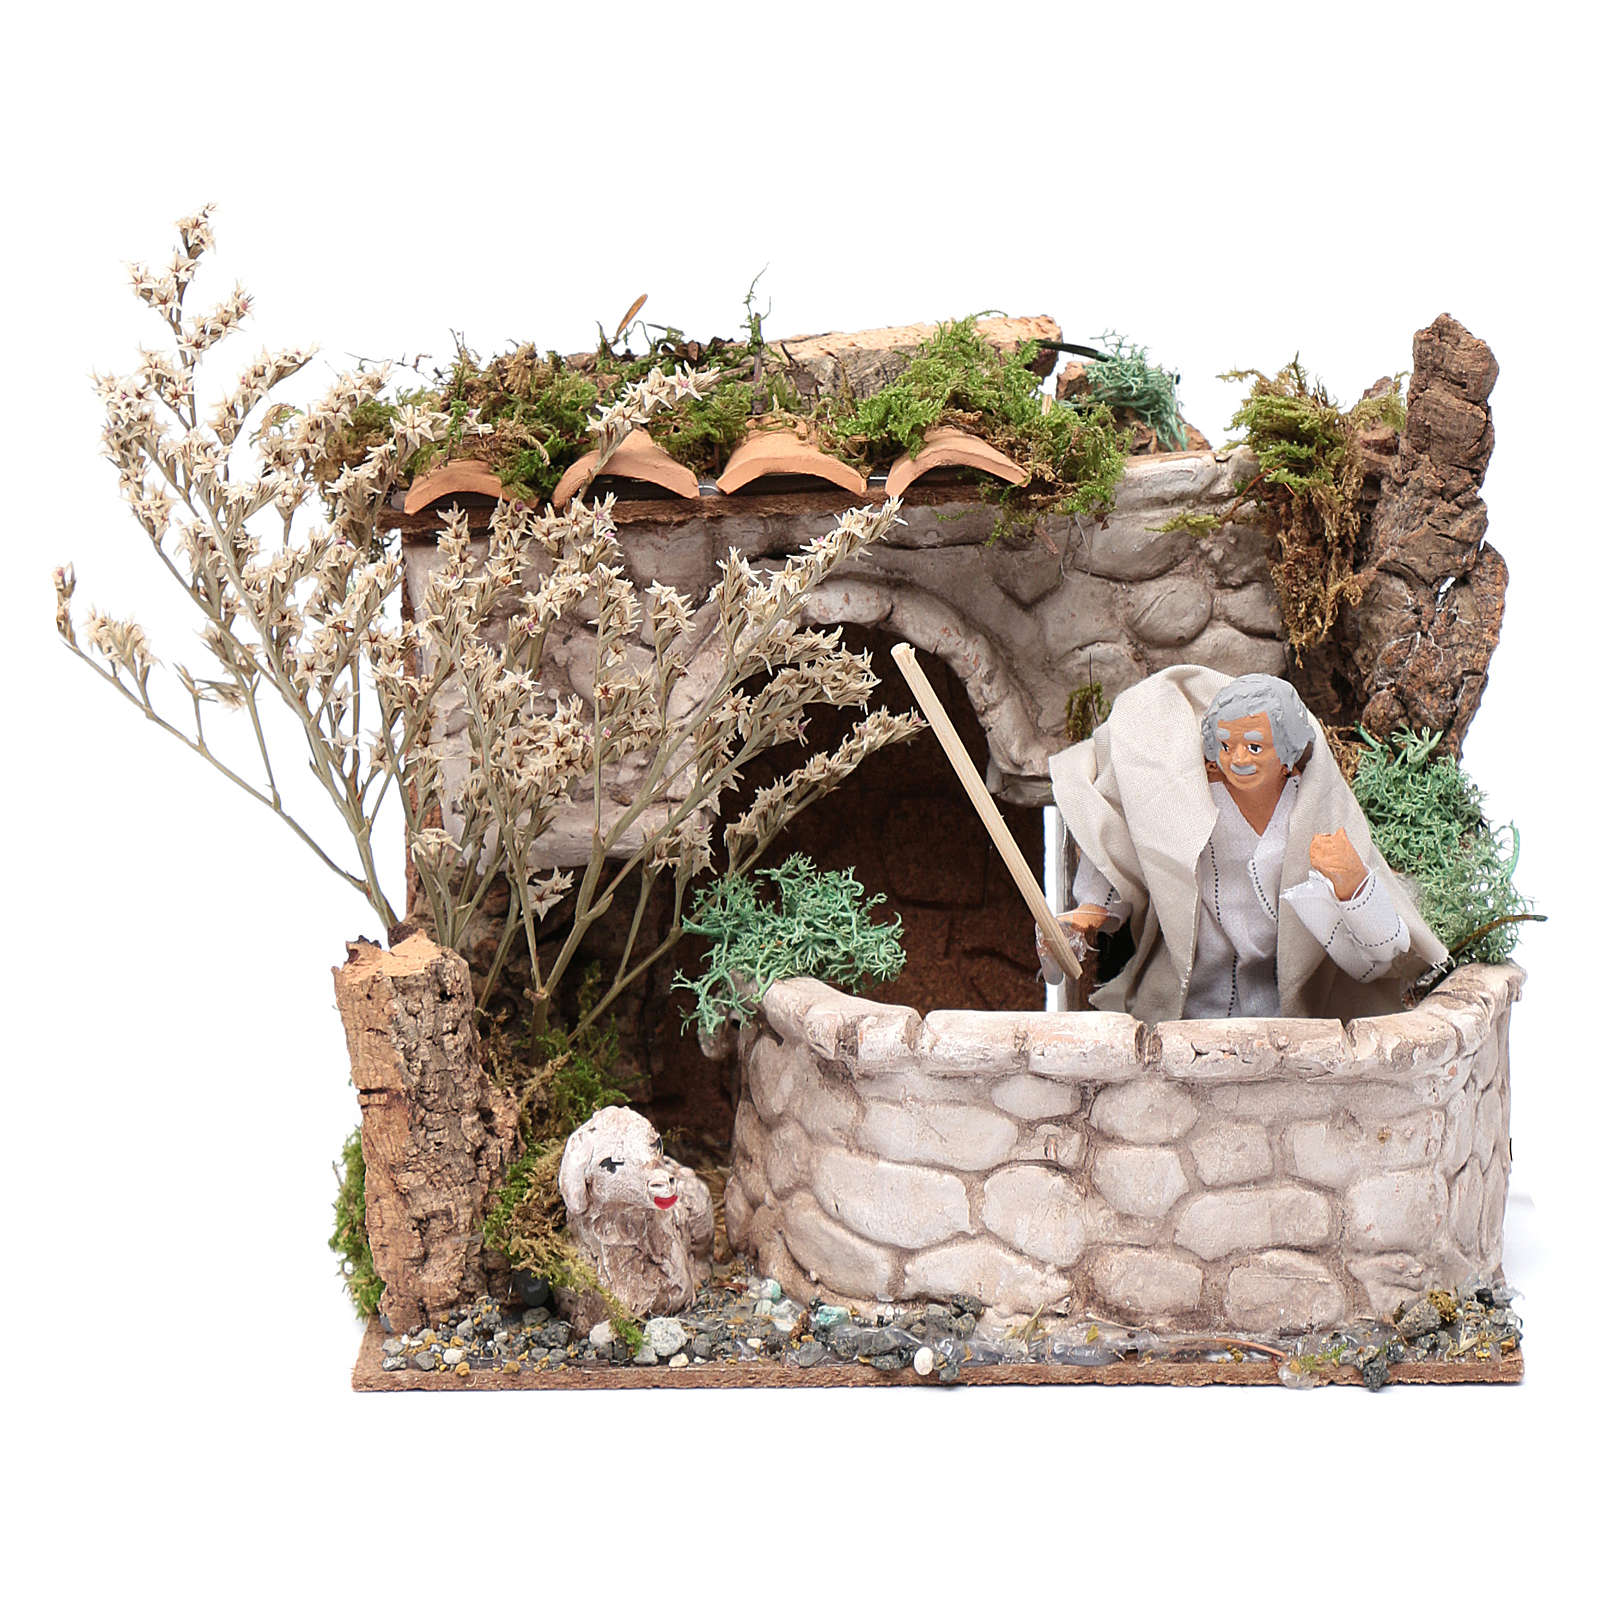 Pecoraio in movimento 15x20x15 cm per presepe 12cm 3